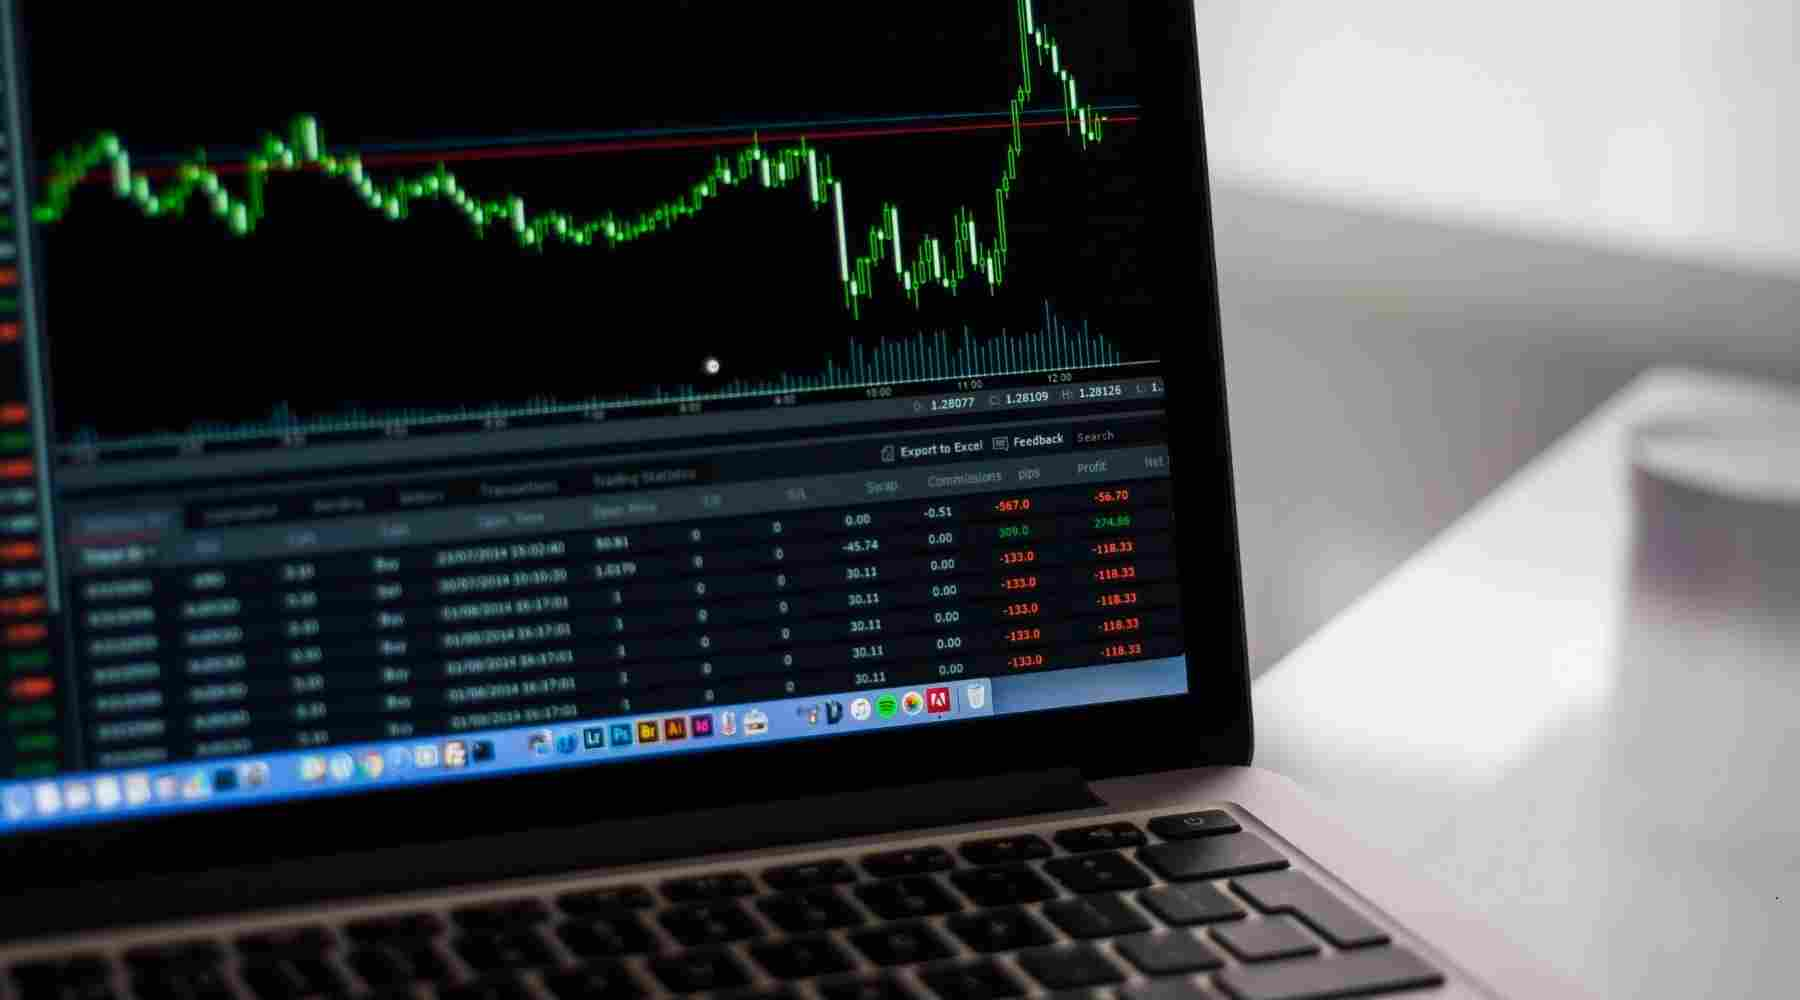 Best Income Producing Assets - Dividend stocks